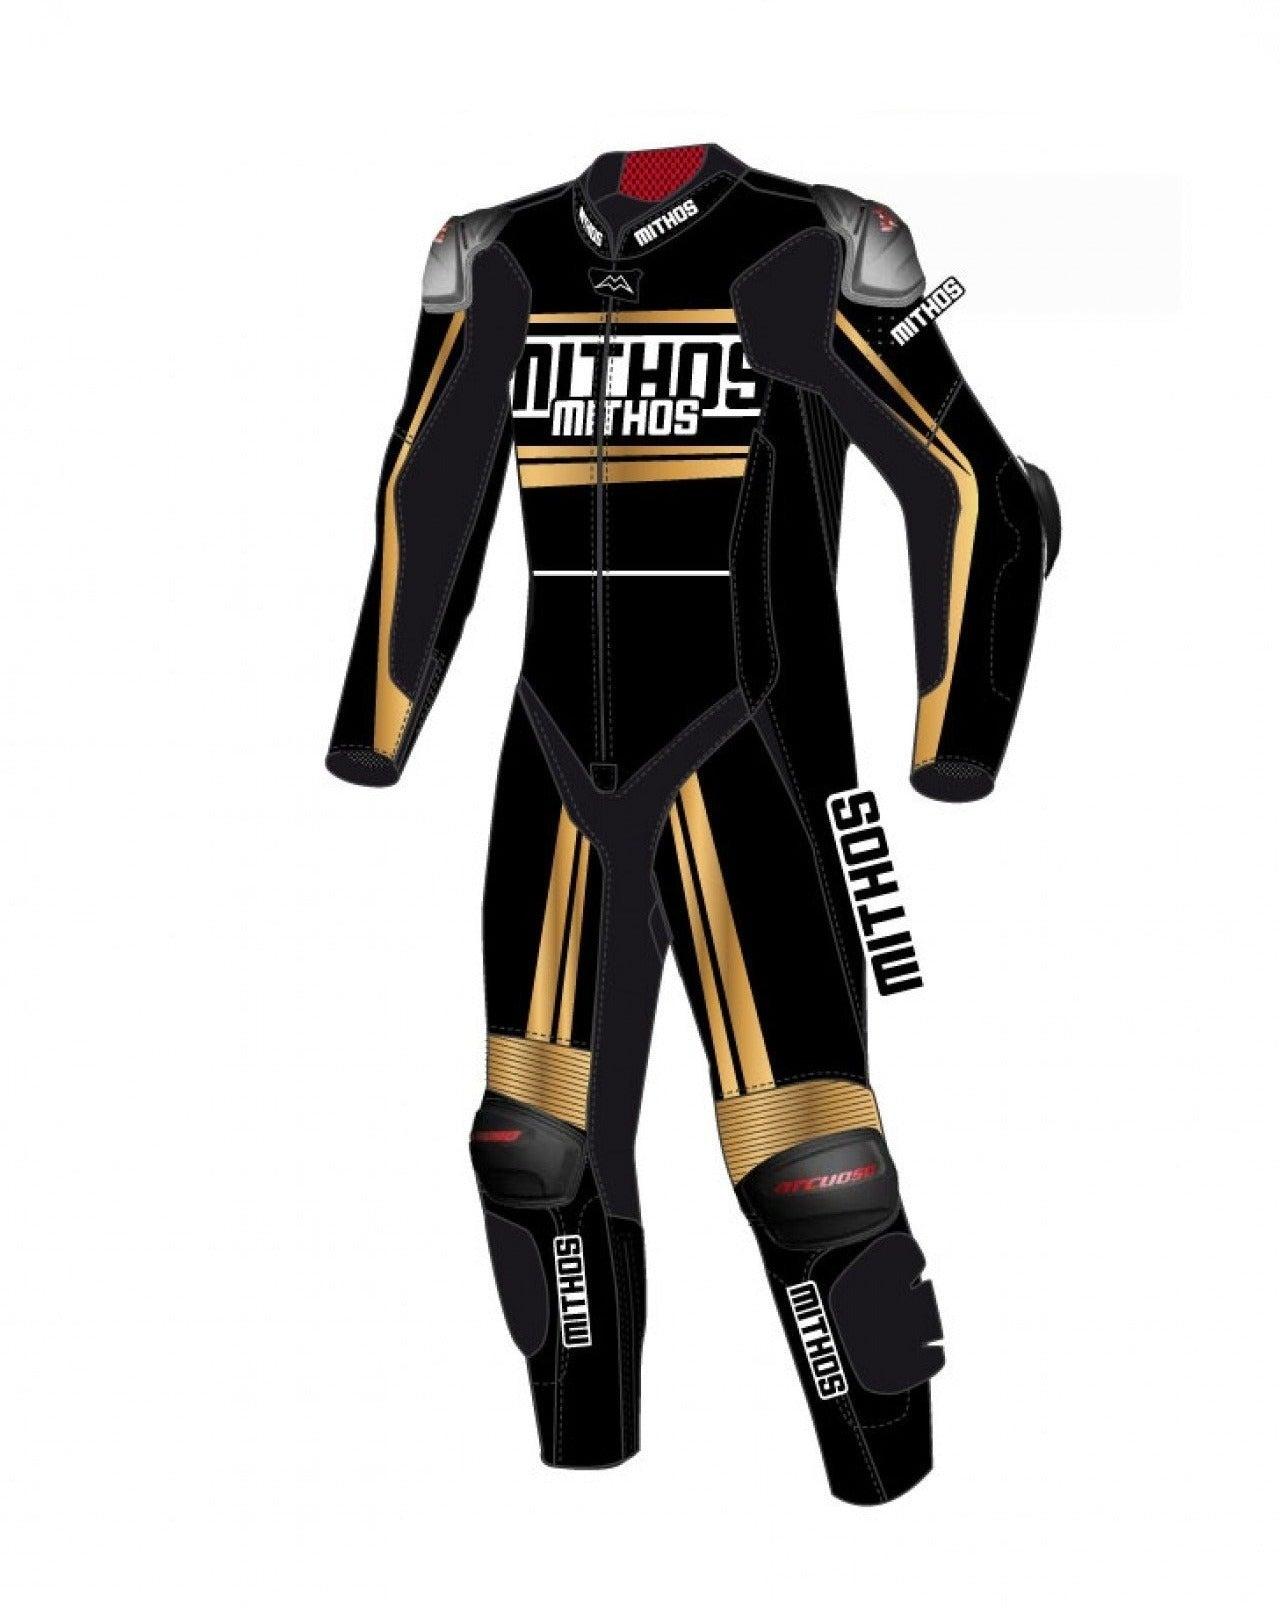 RCP15 / RCP18 CUSTOM RACING SUIT – DESIGN RACE 3